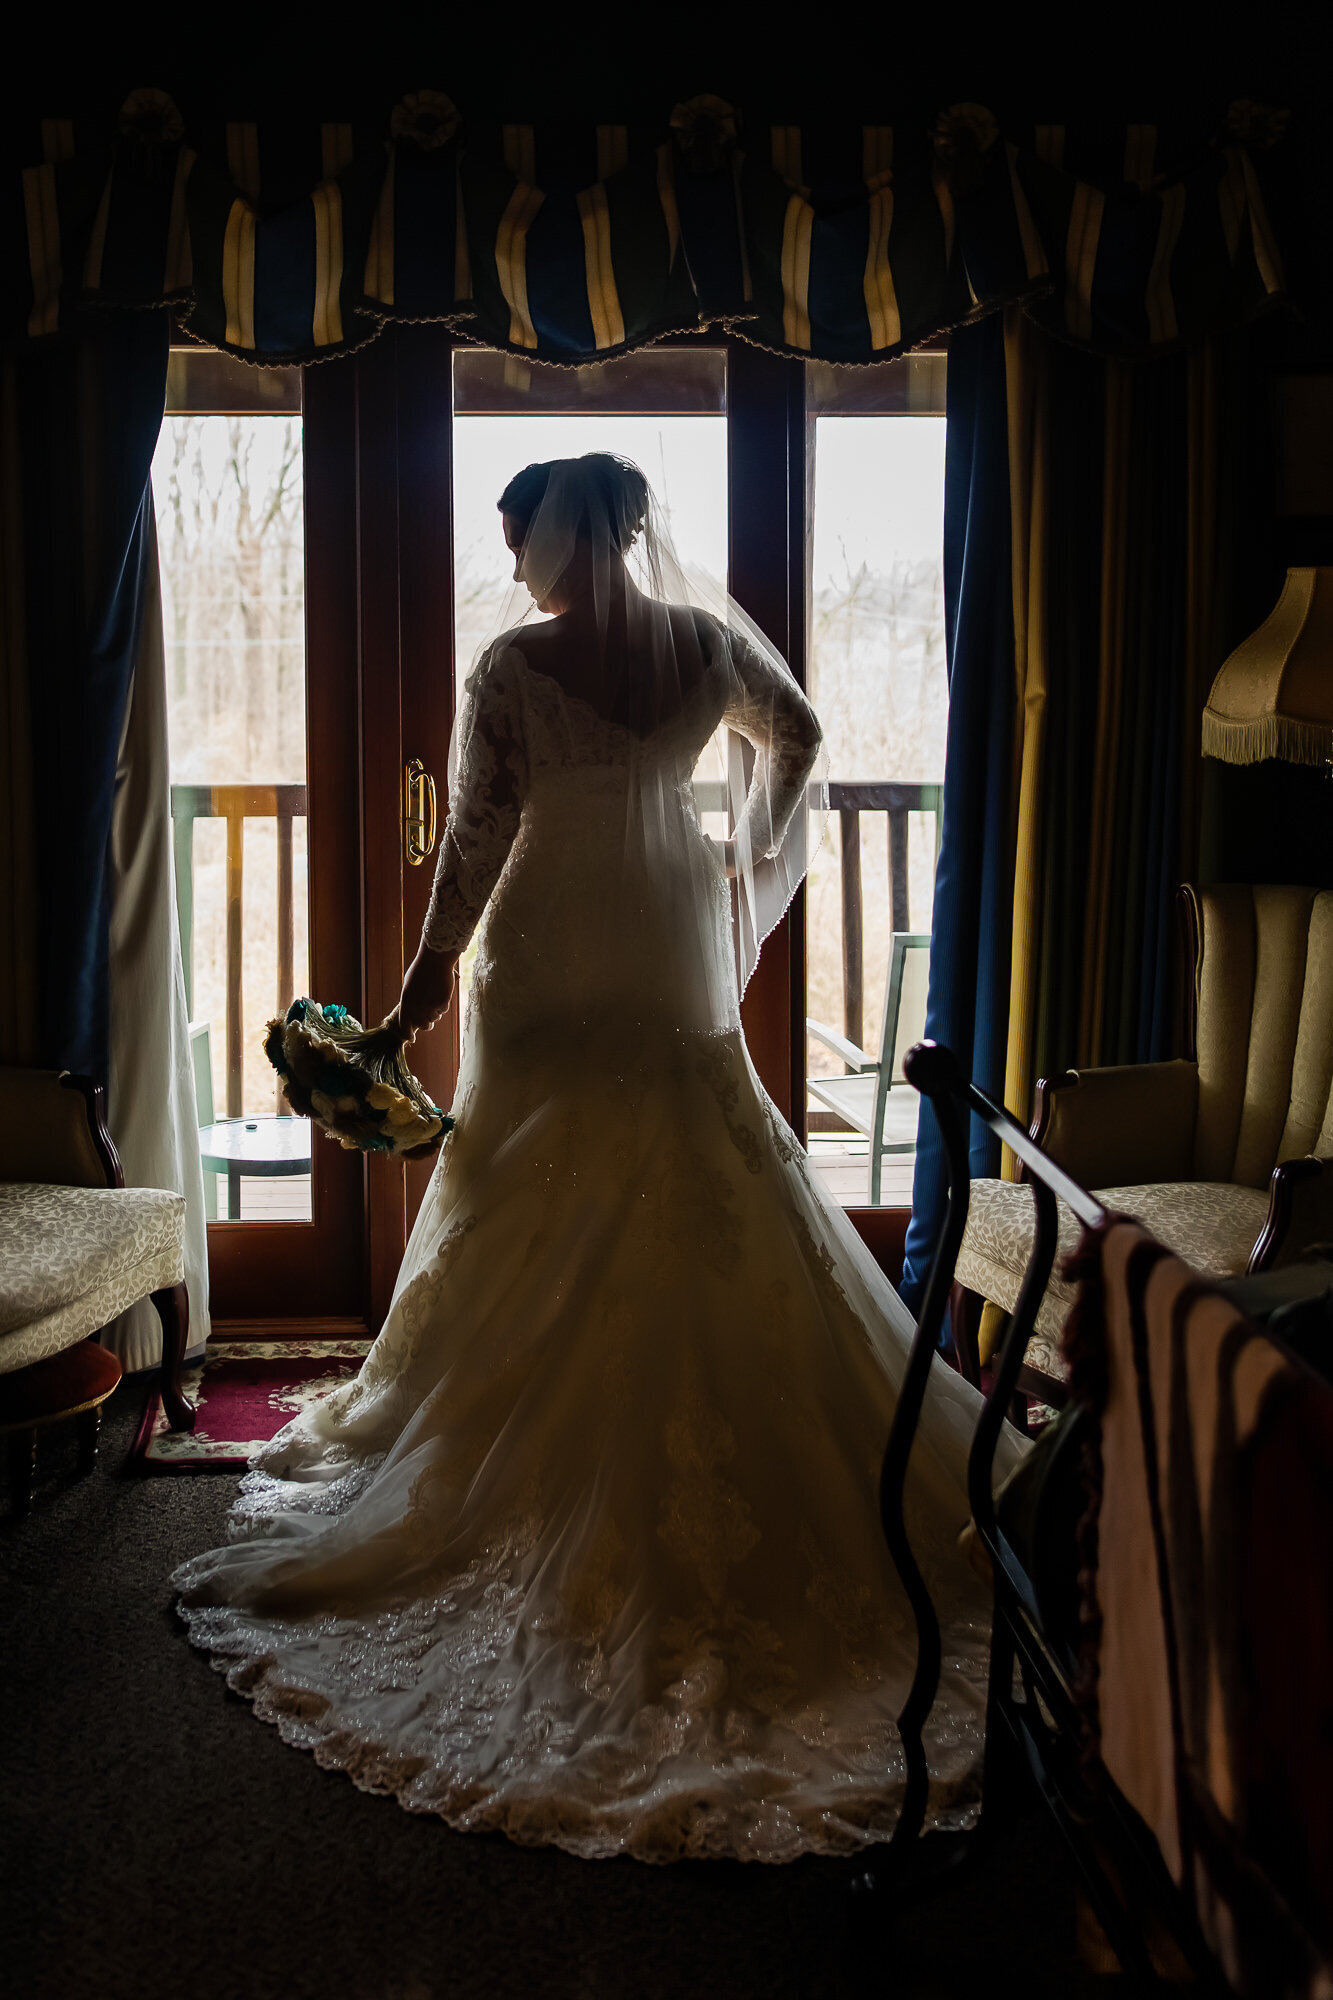 Dramatic portrait of a bride in St. Louis